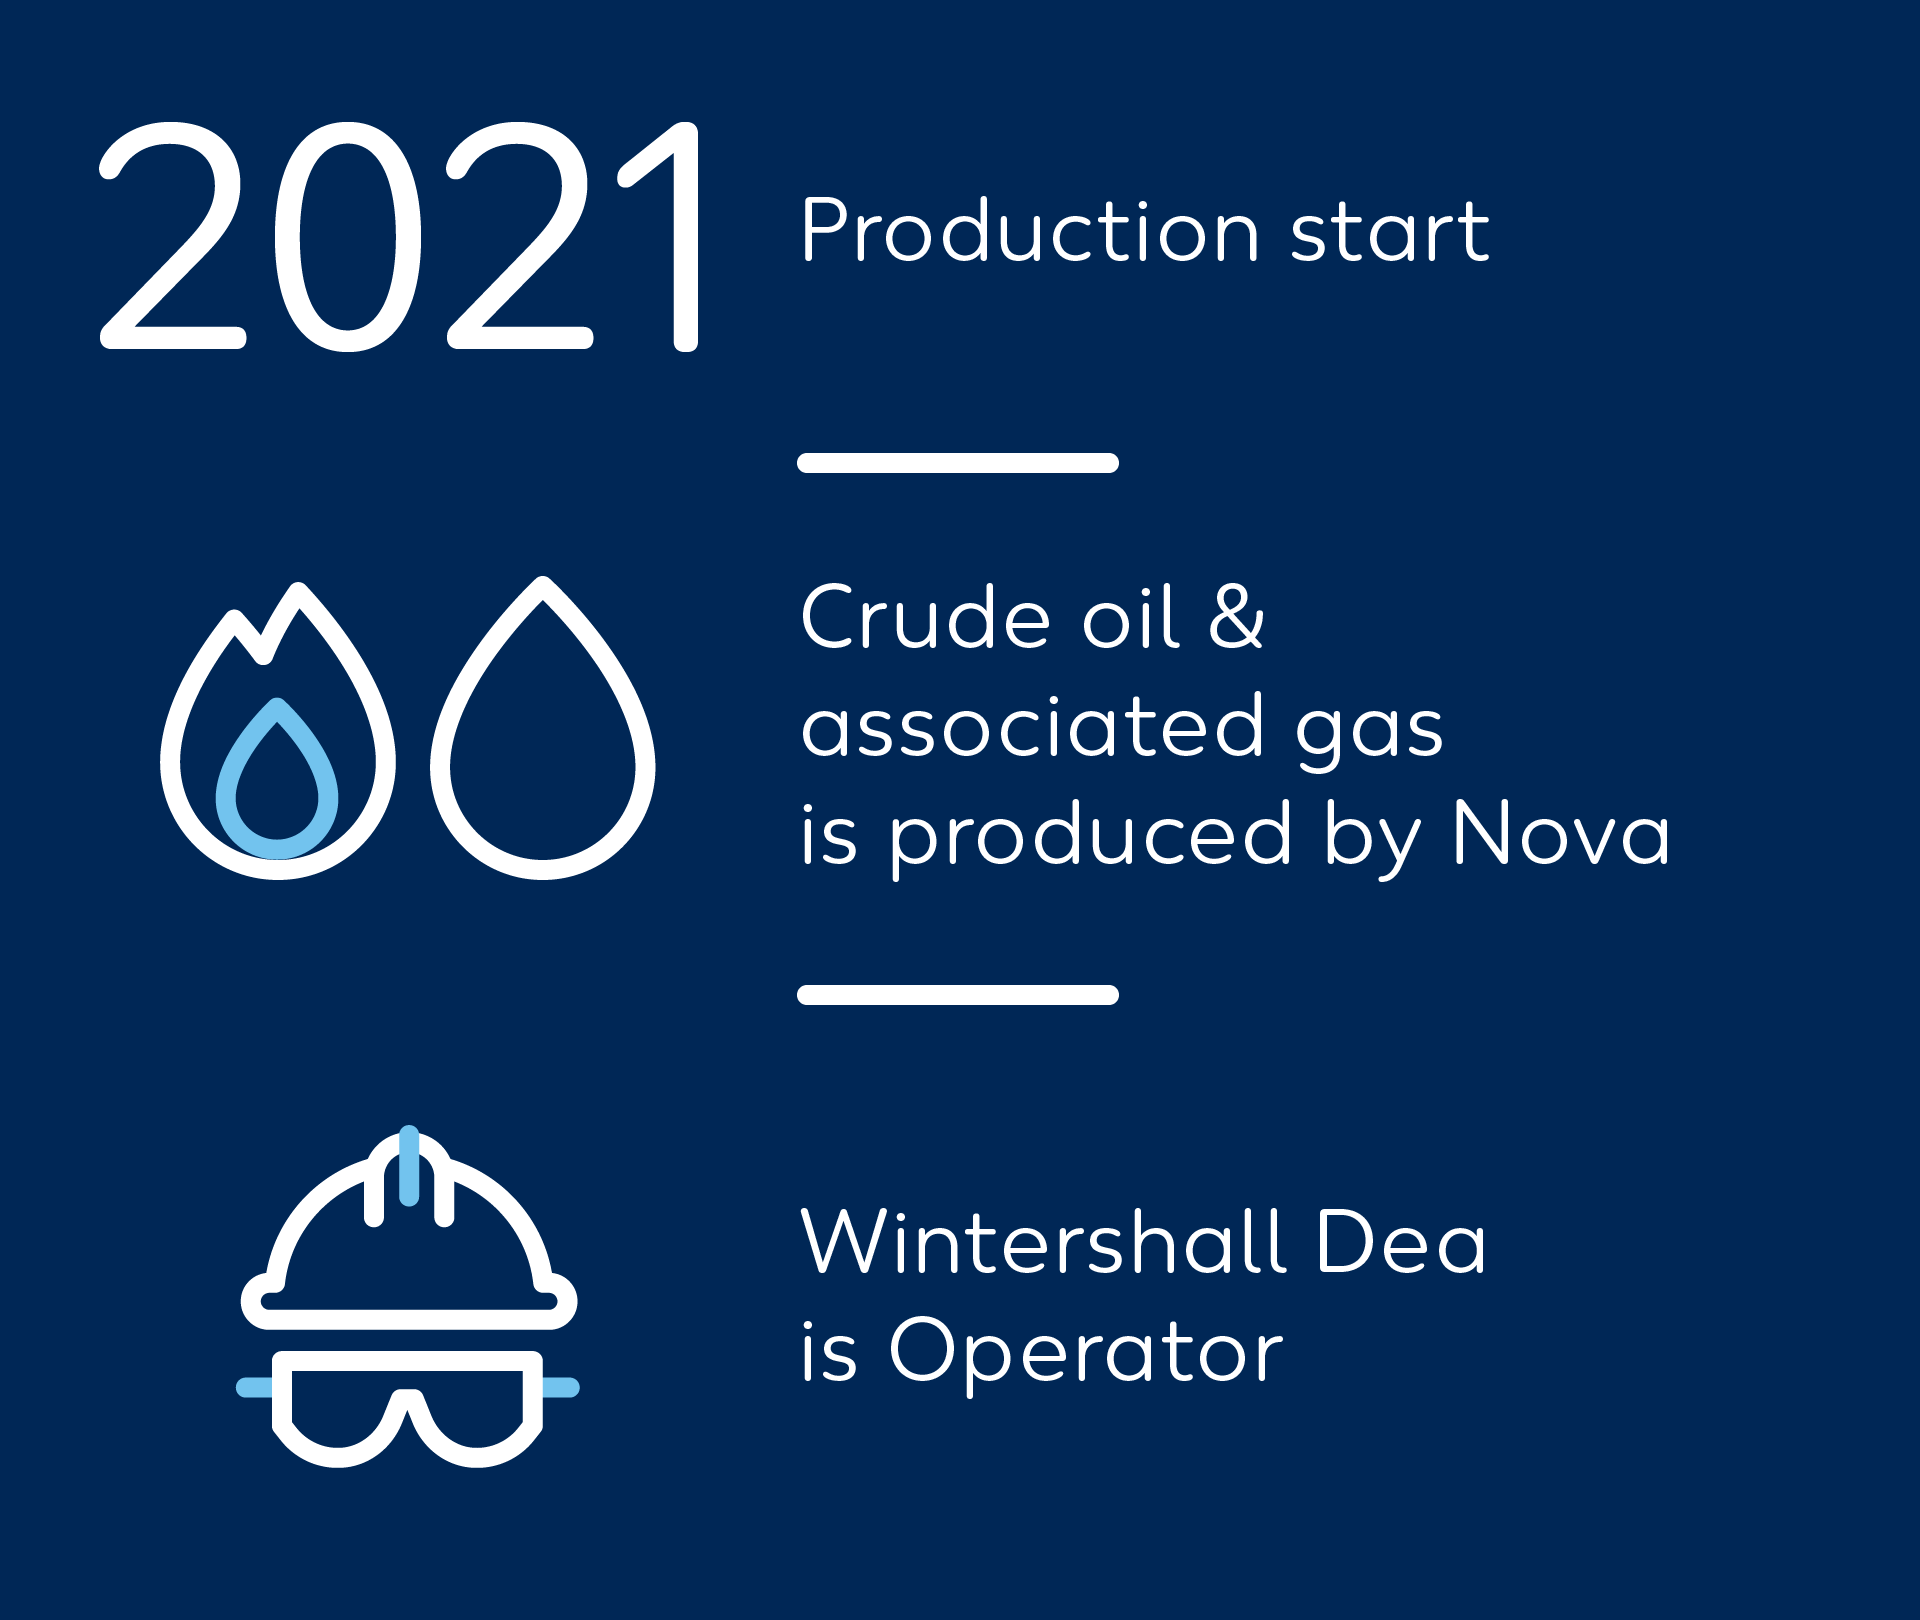 Wintershall Dea Norway Quickfact Nova